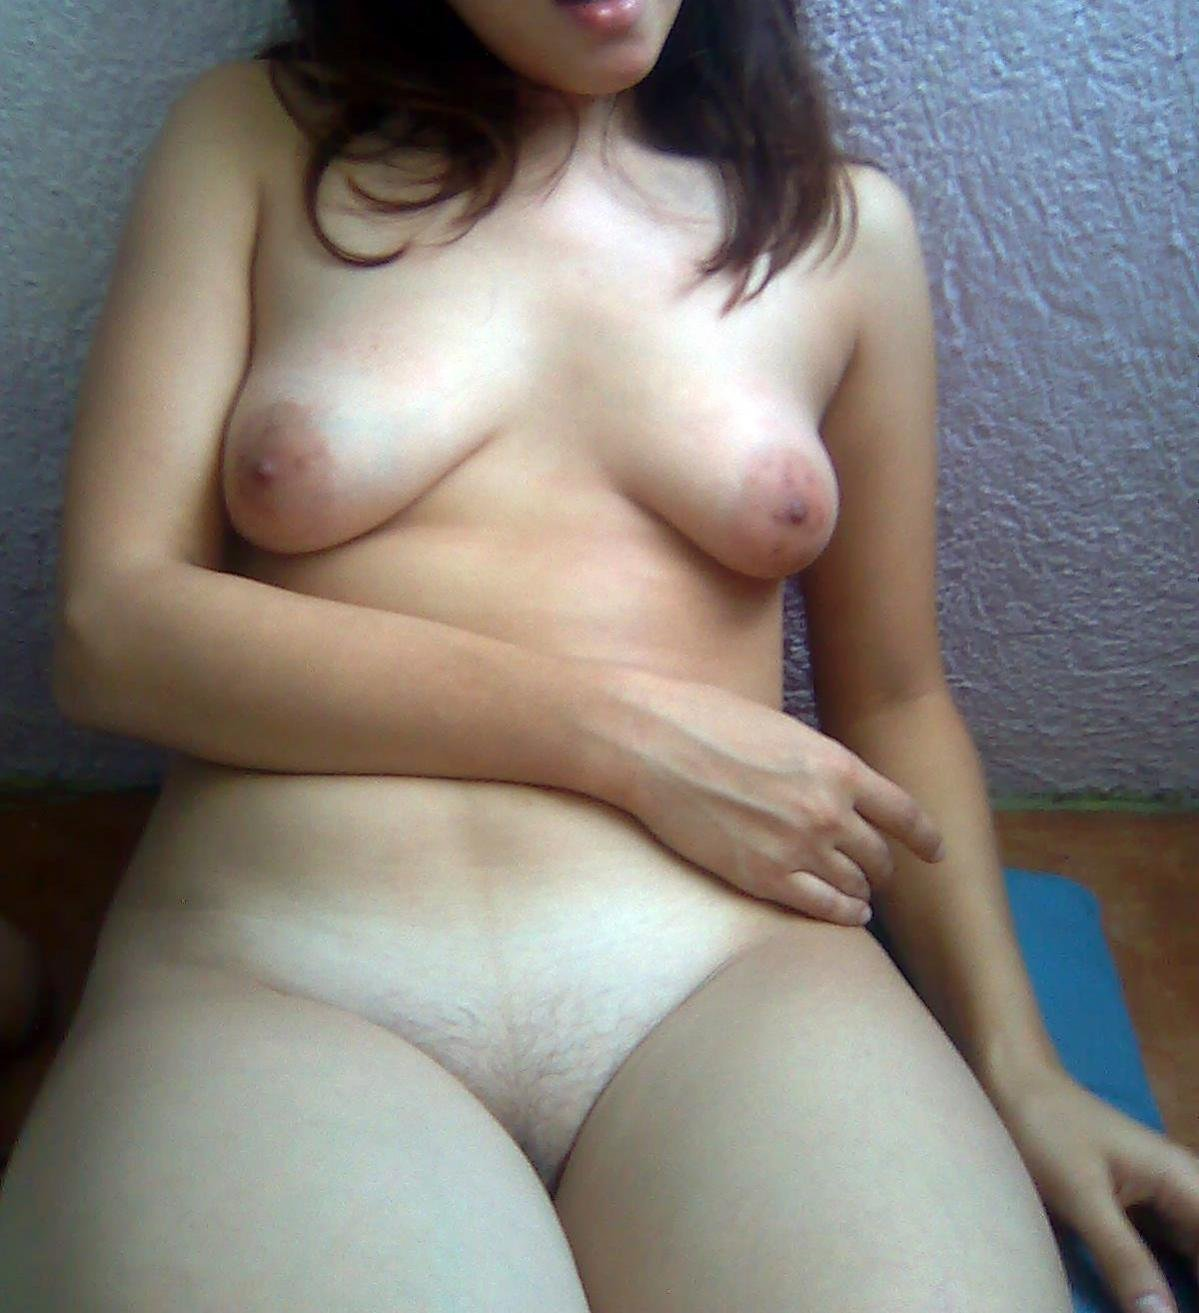 Homemade solo Amateur incest mom 7th street xxx